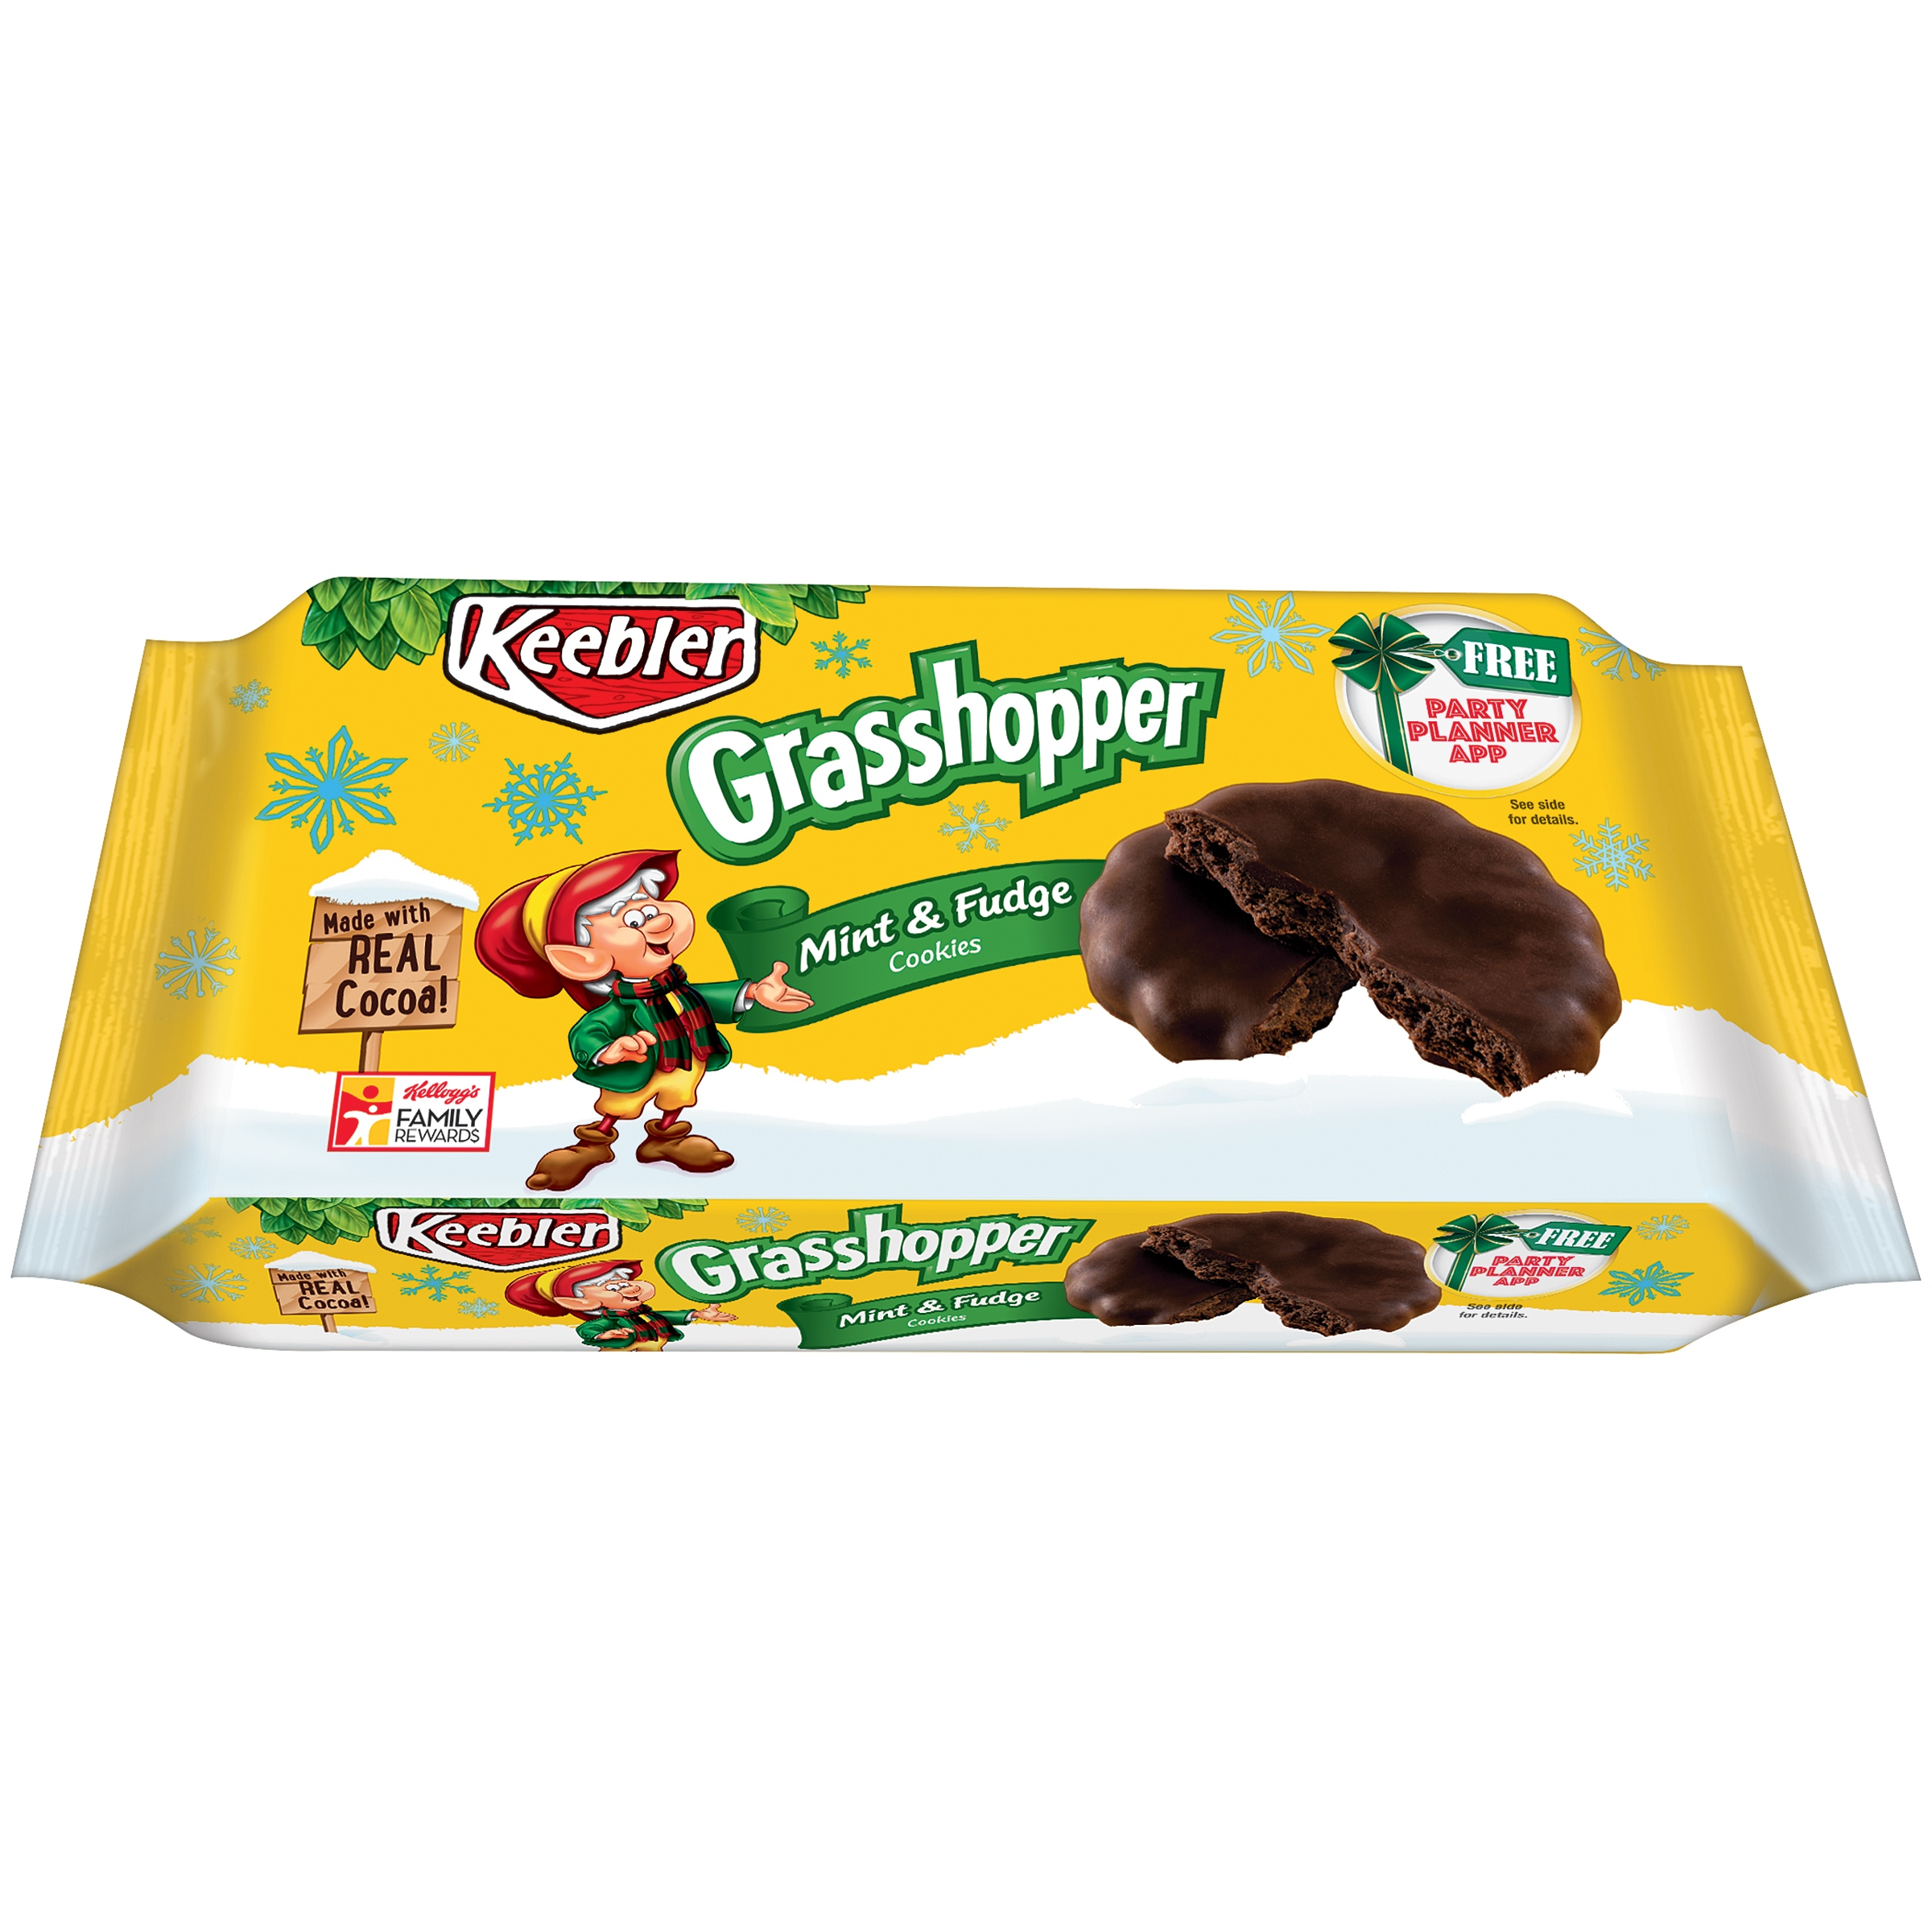 Keebler Grasshopper Mint & Fudge Cookies, 10 oz - Walmart.com